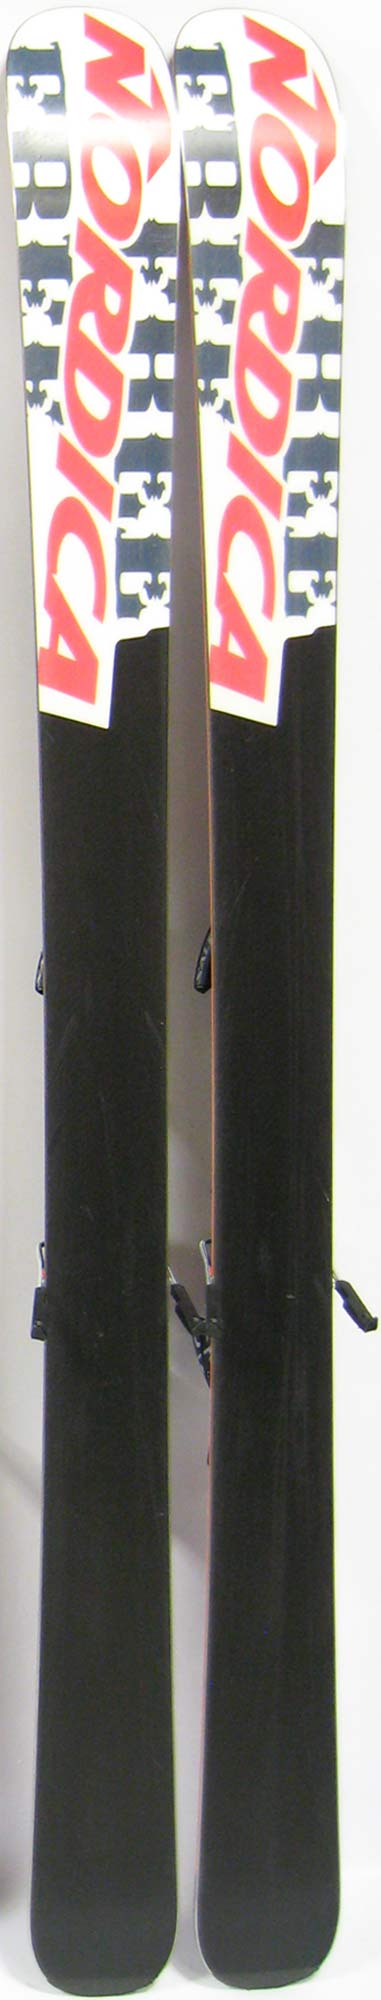 Bases of 2012 Nordica Nemesis Skis For Sale